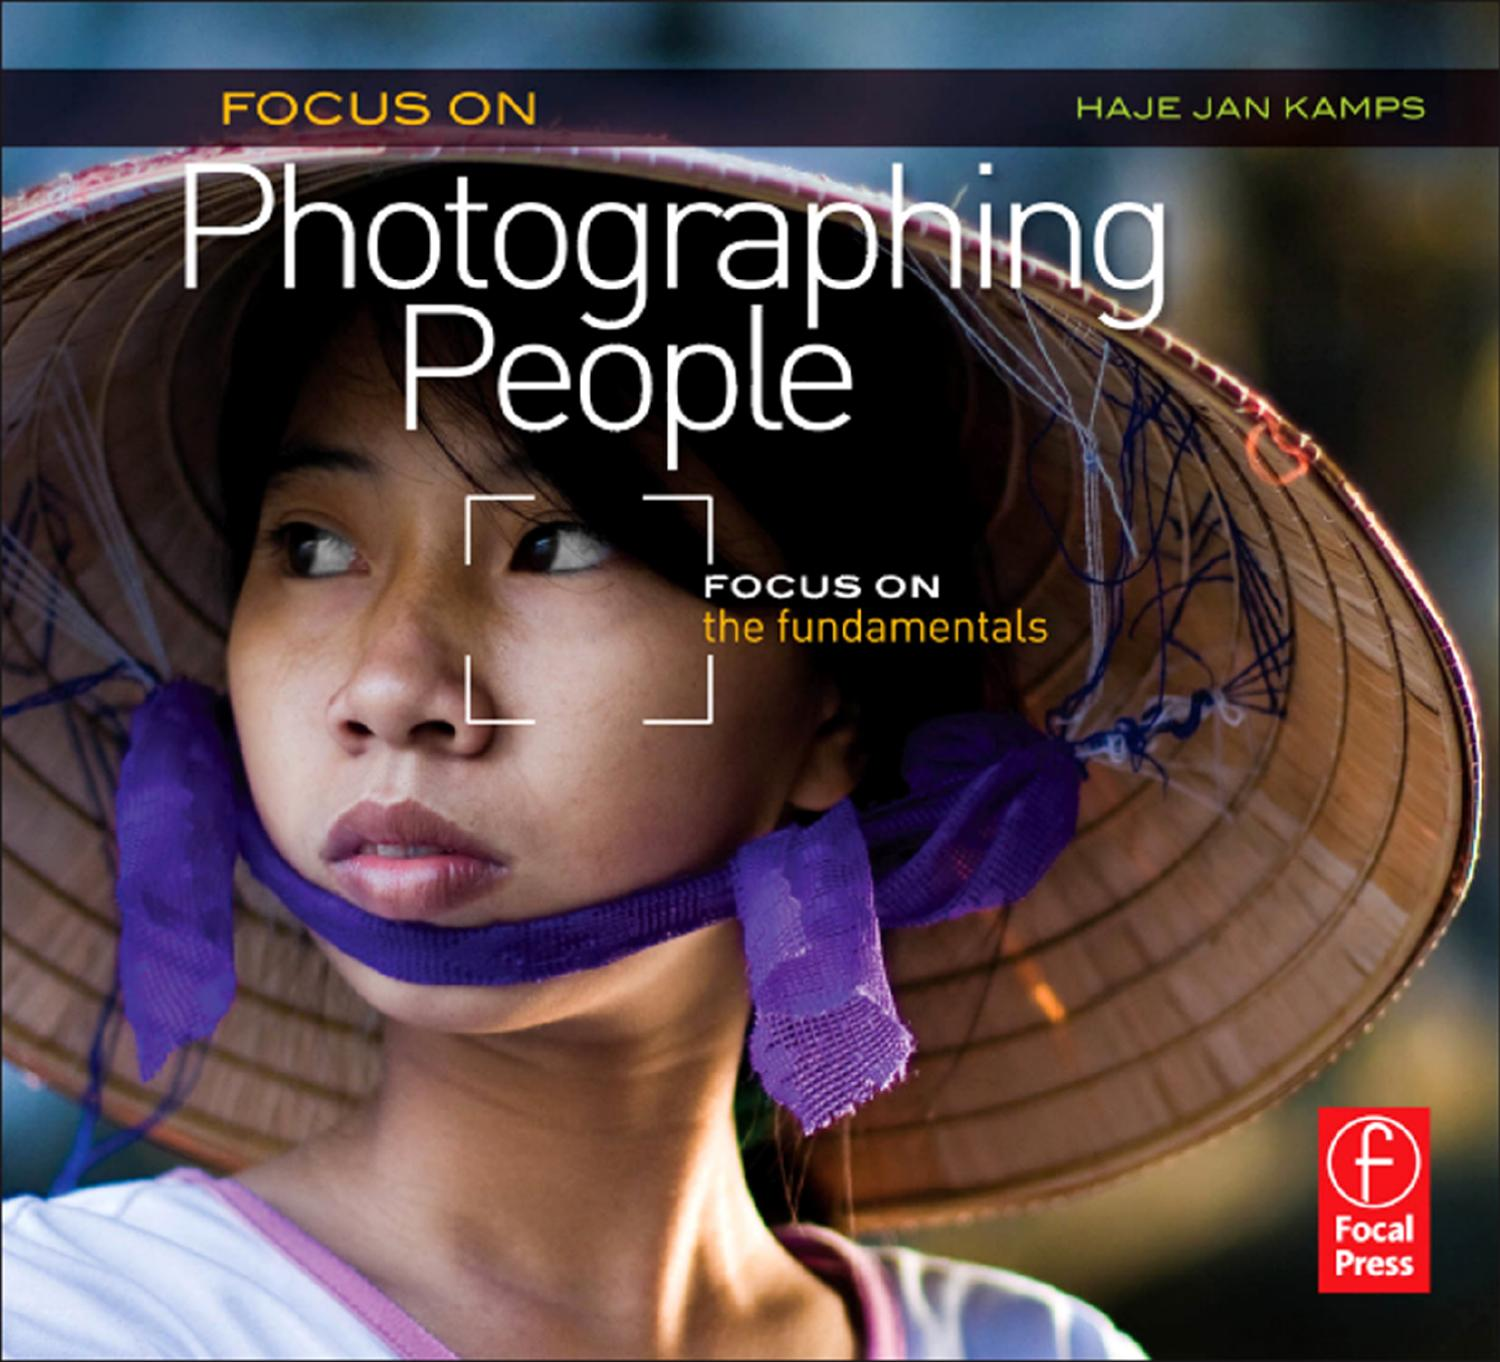 Focus On (Photographing people)